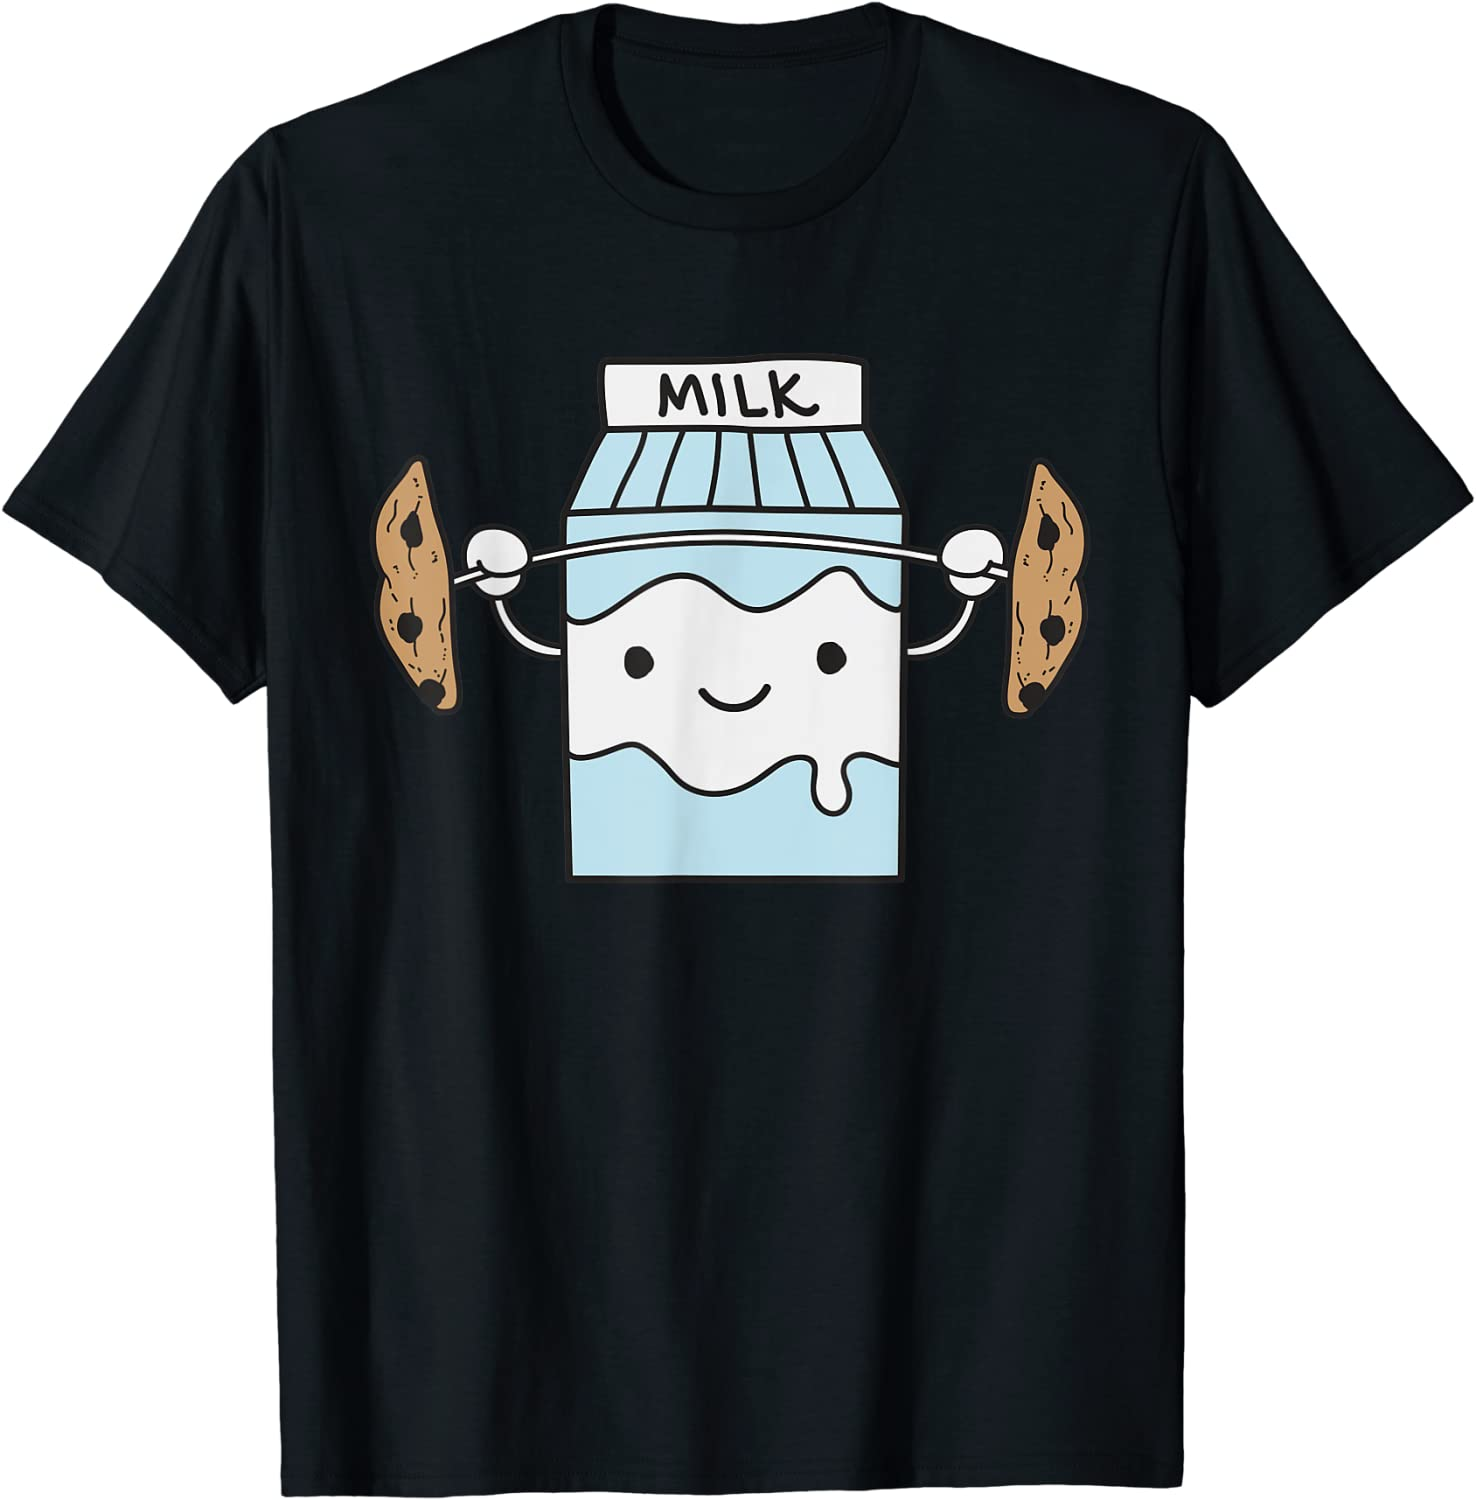 Milk Lifting Cookies Funny Food Snatch Squat Barbell Gym T-Shirt